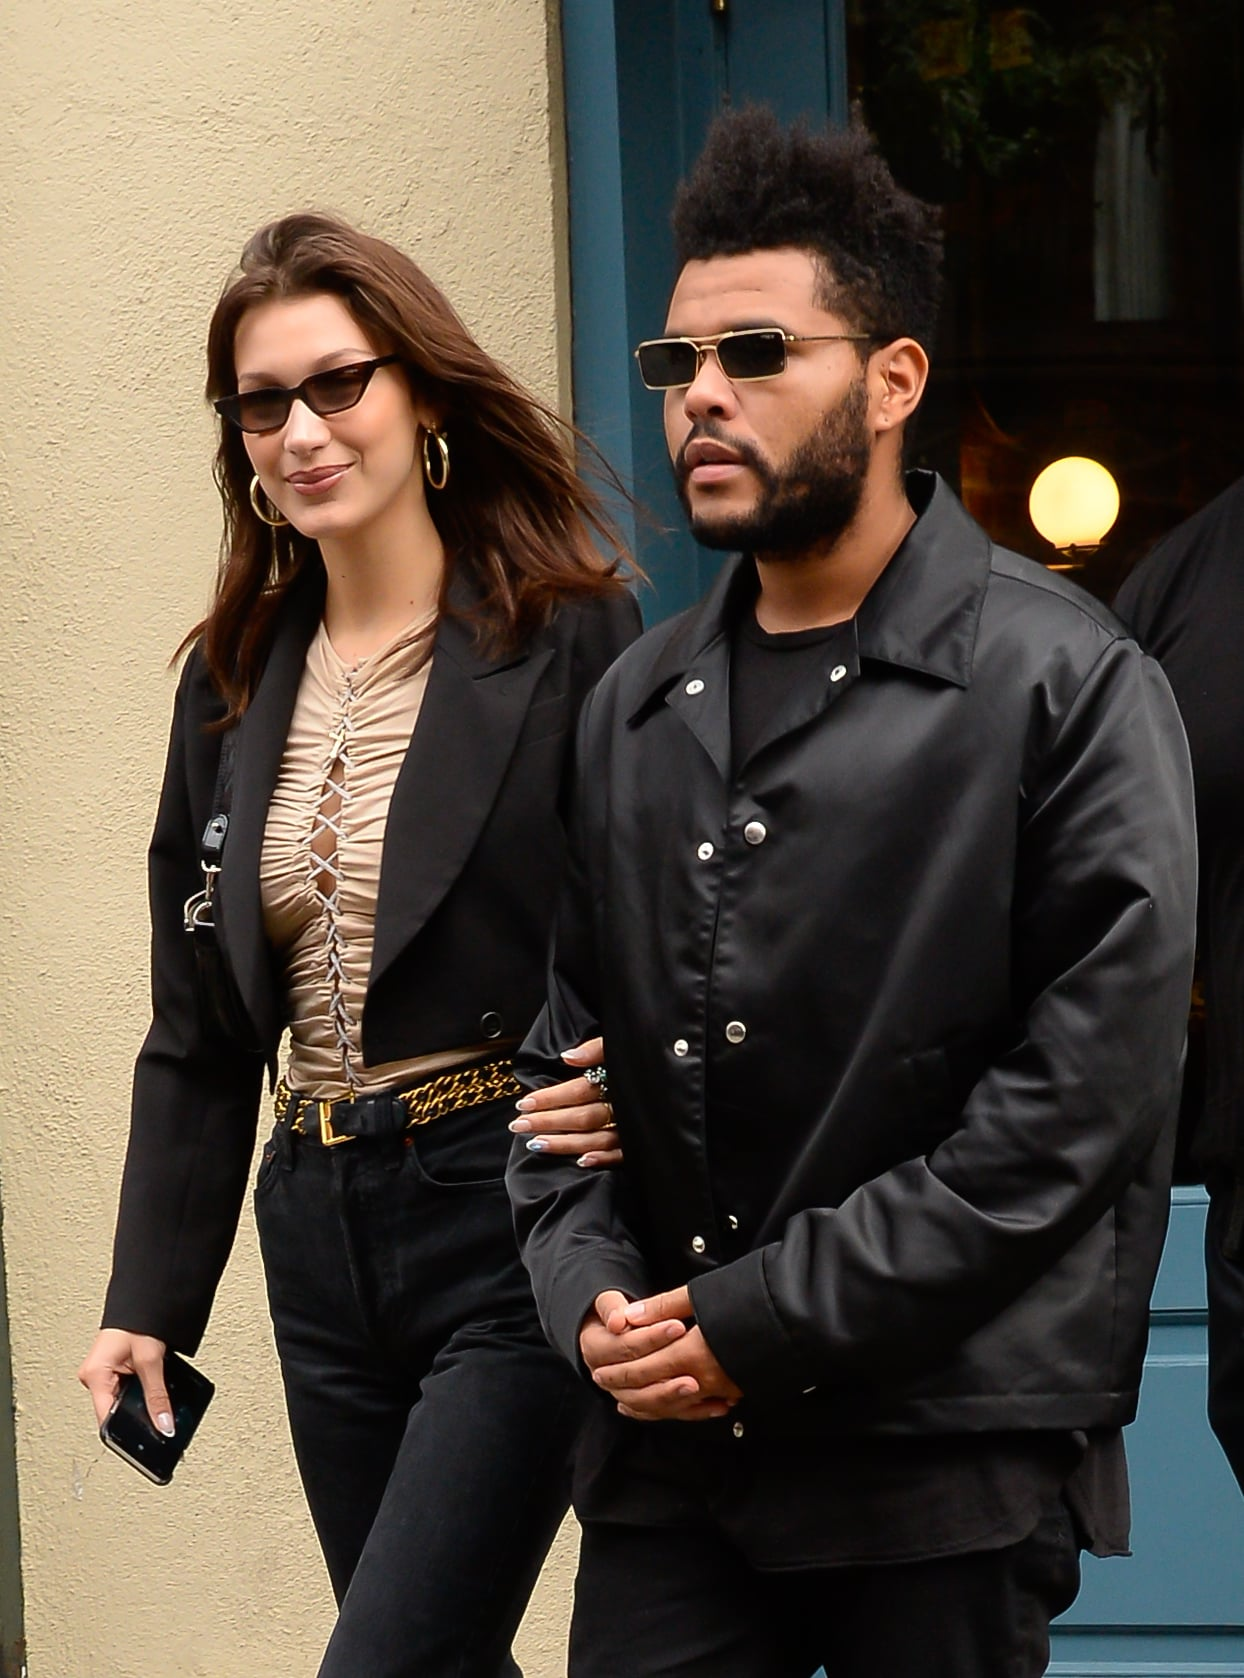 NEW YORK, NY - OCTOBER 09:  Model Bella Hadid and The Weeknd is seen on